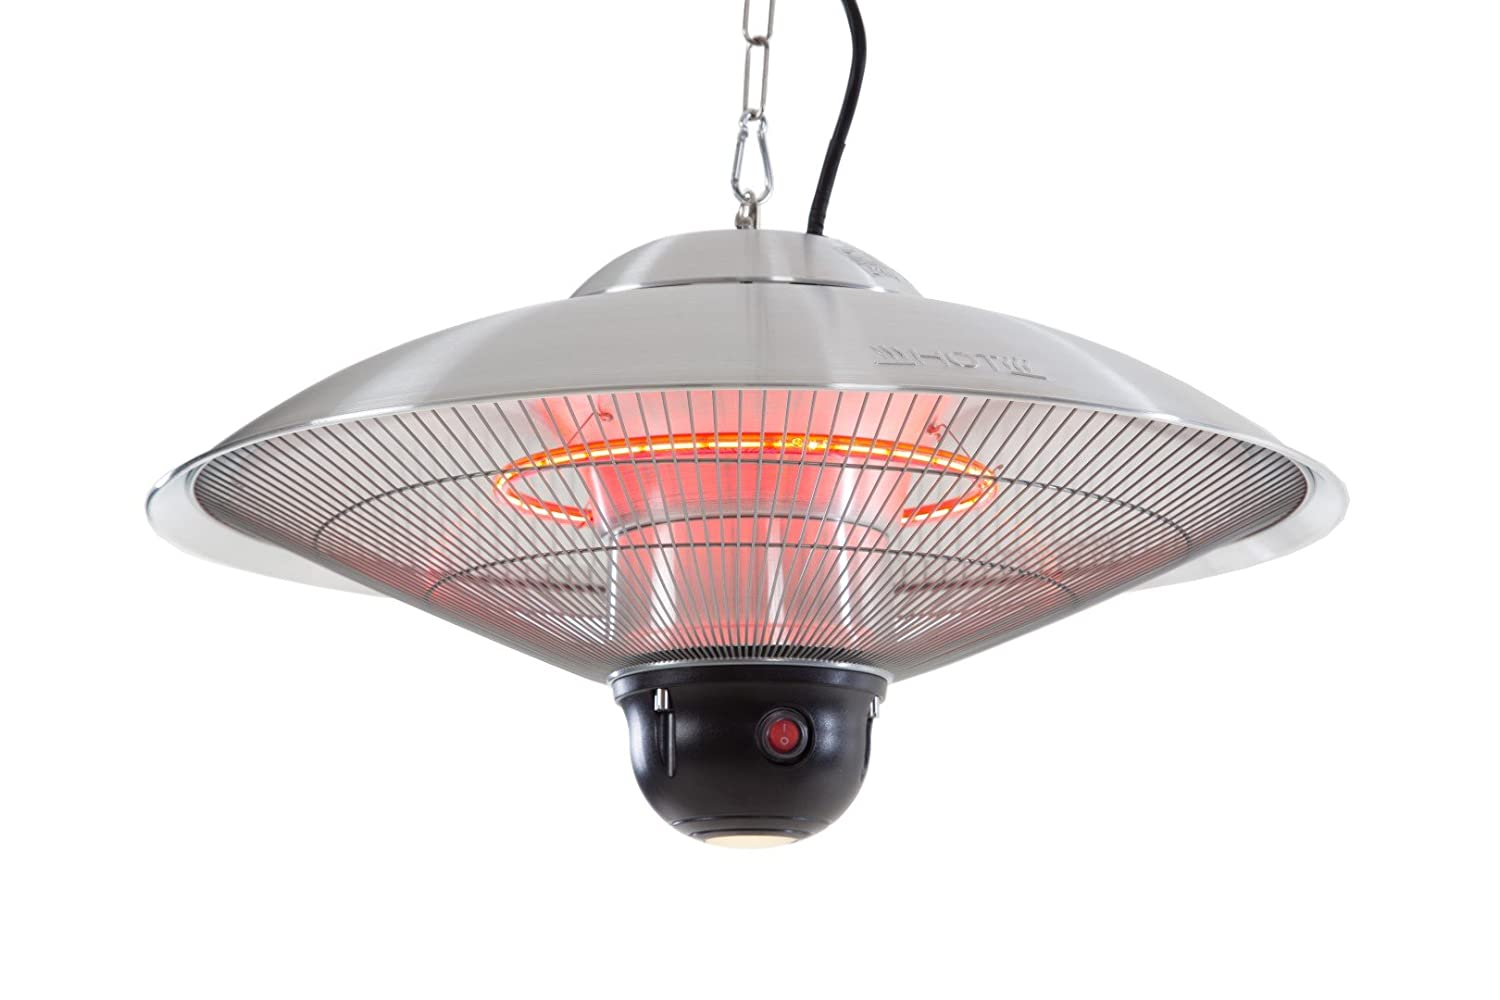 Sunred CE09LGT hanging 1800 W Golden Tube und Light